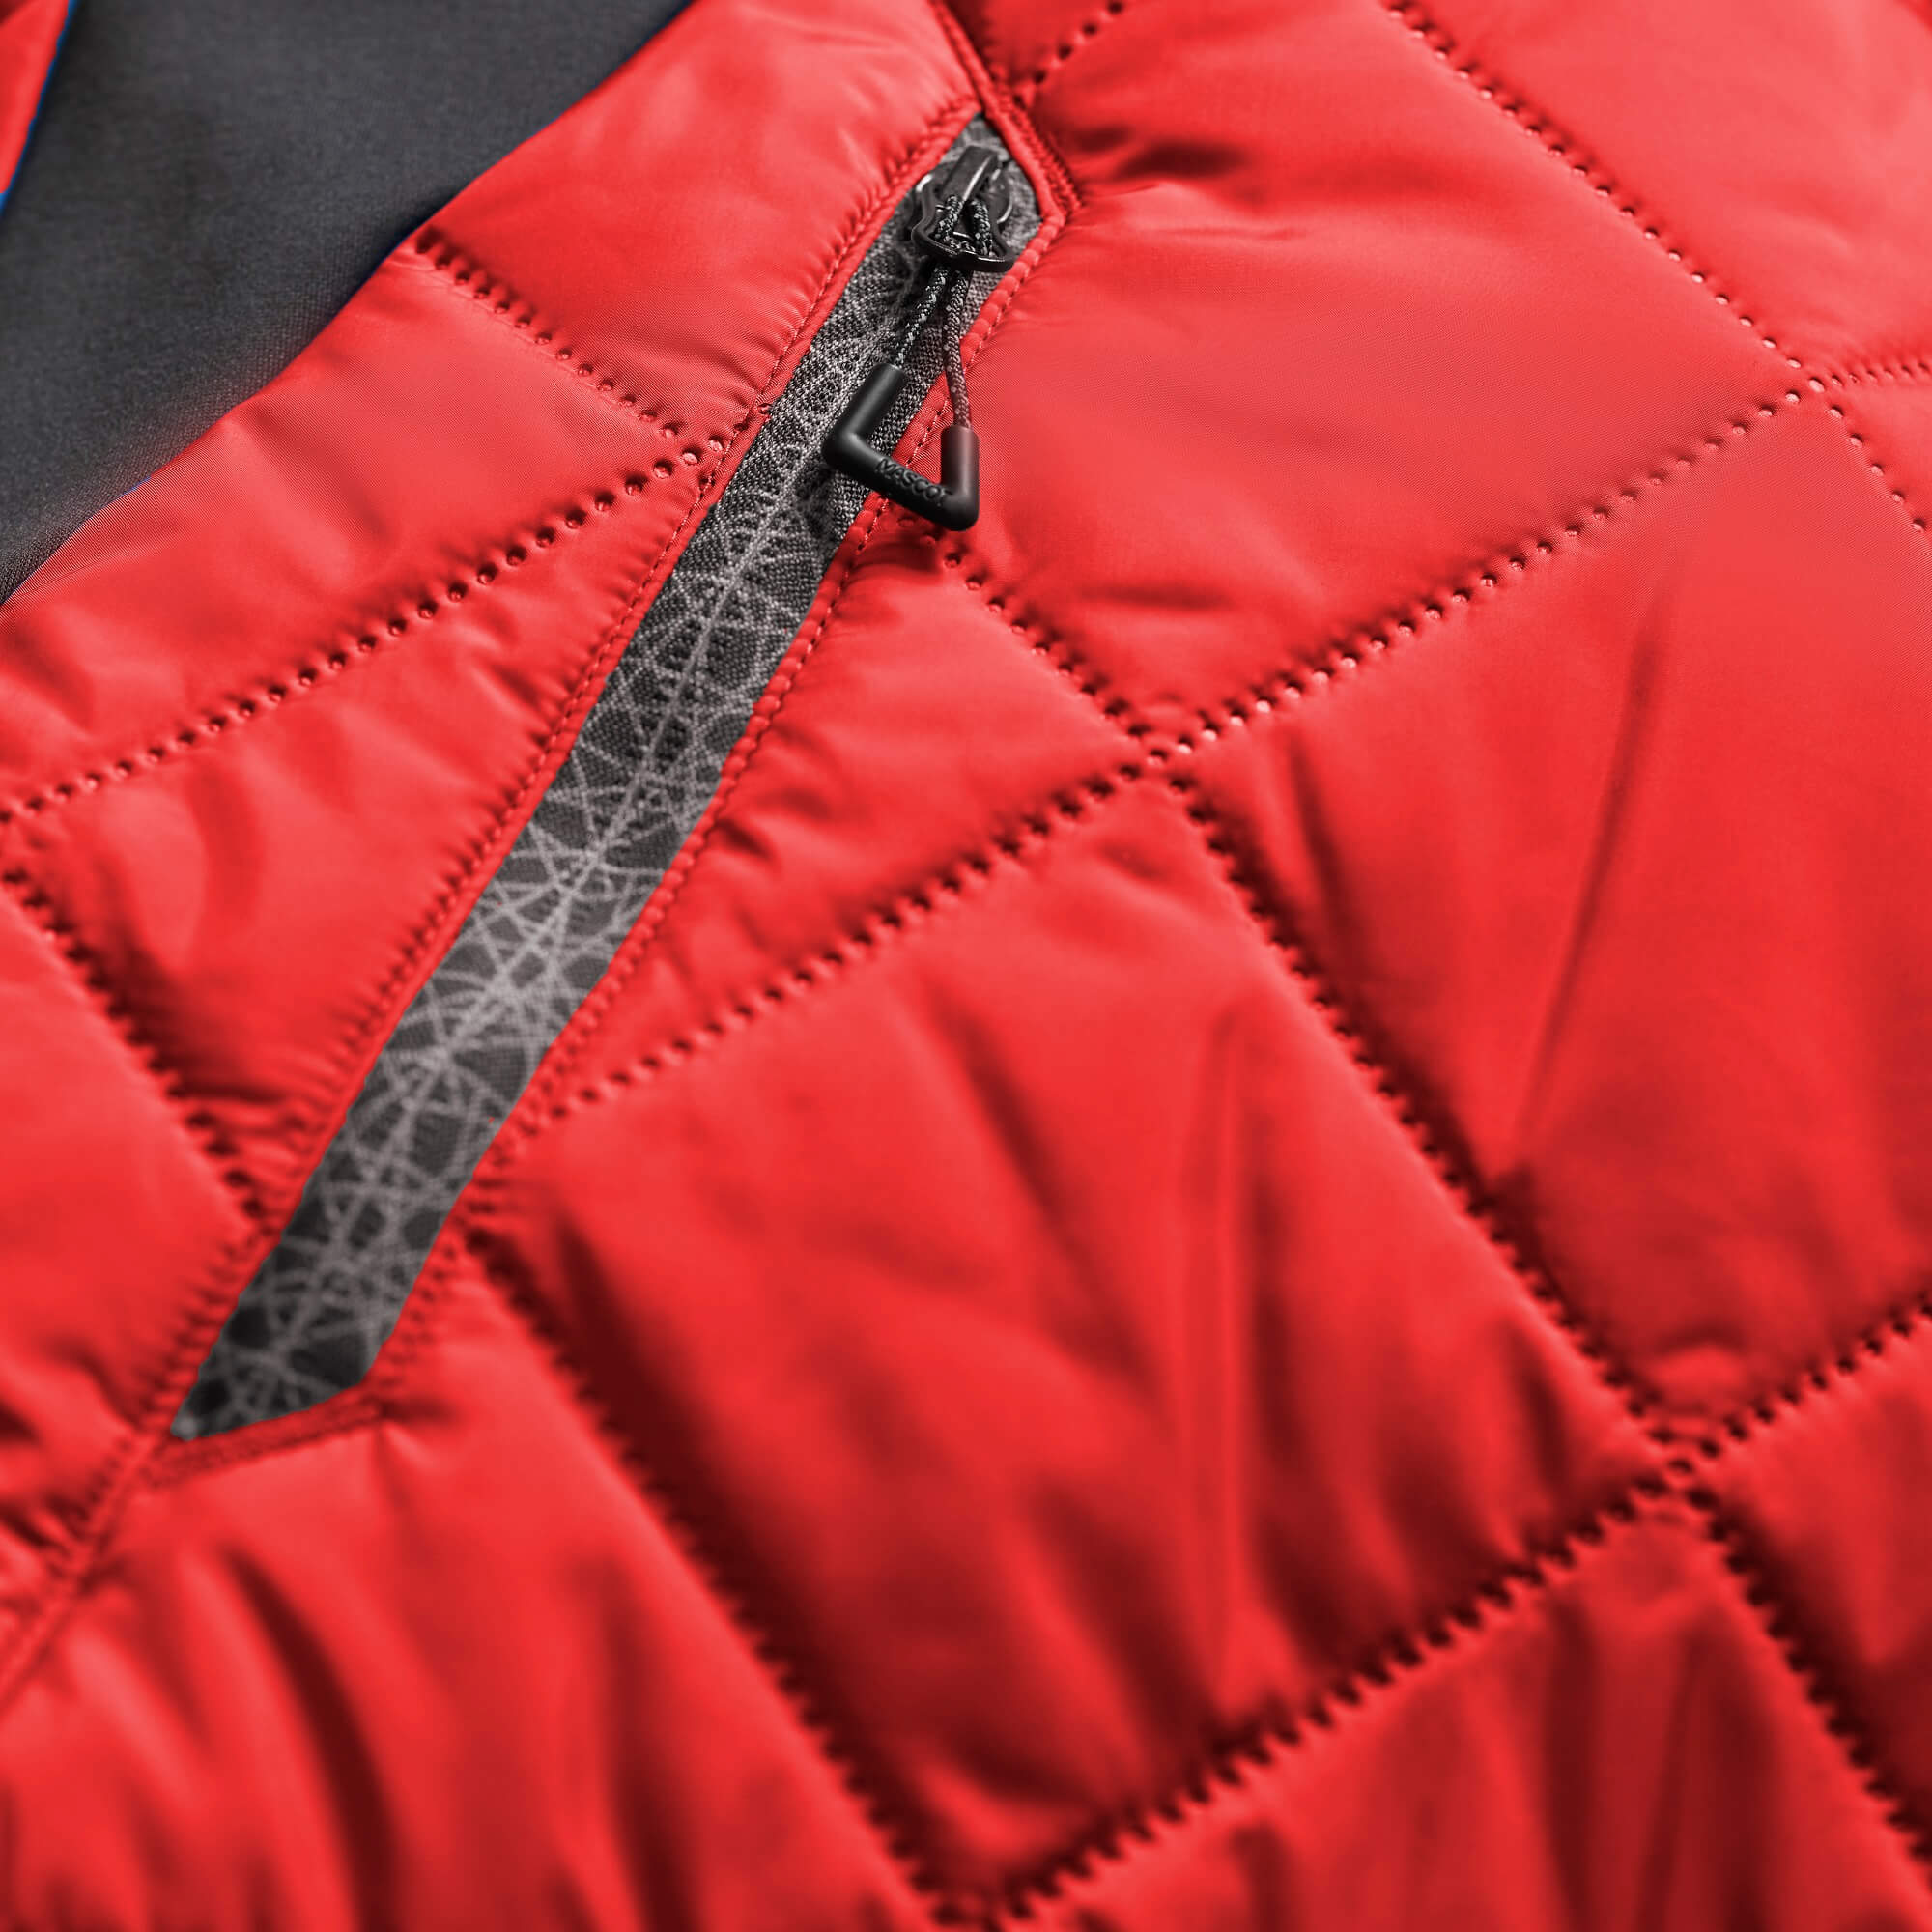 Thermokleidung - Rot - Detail - MASCOT® ACCELERATE